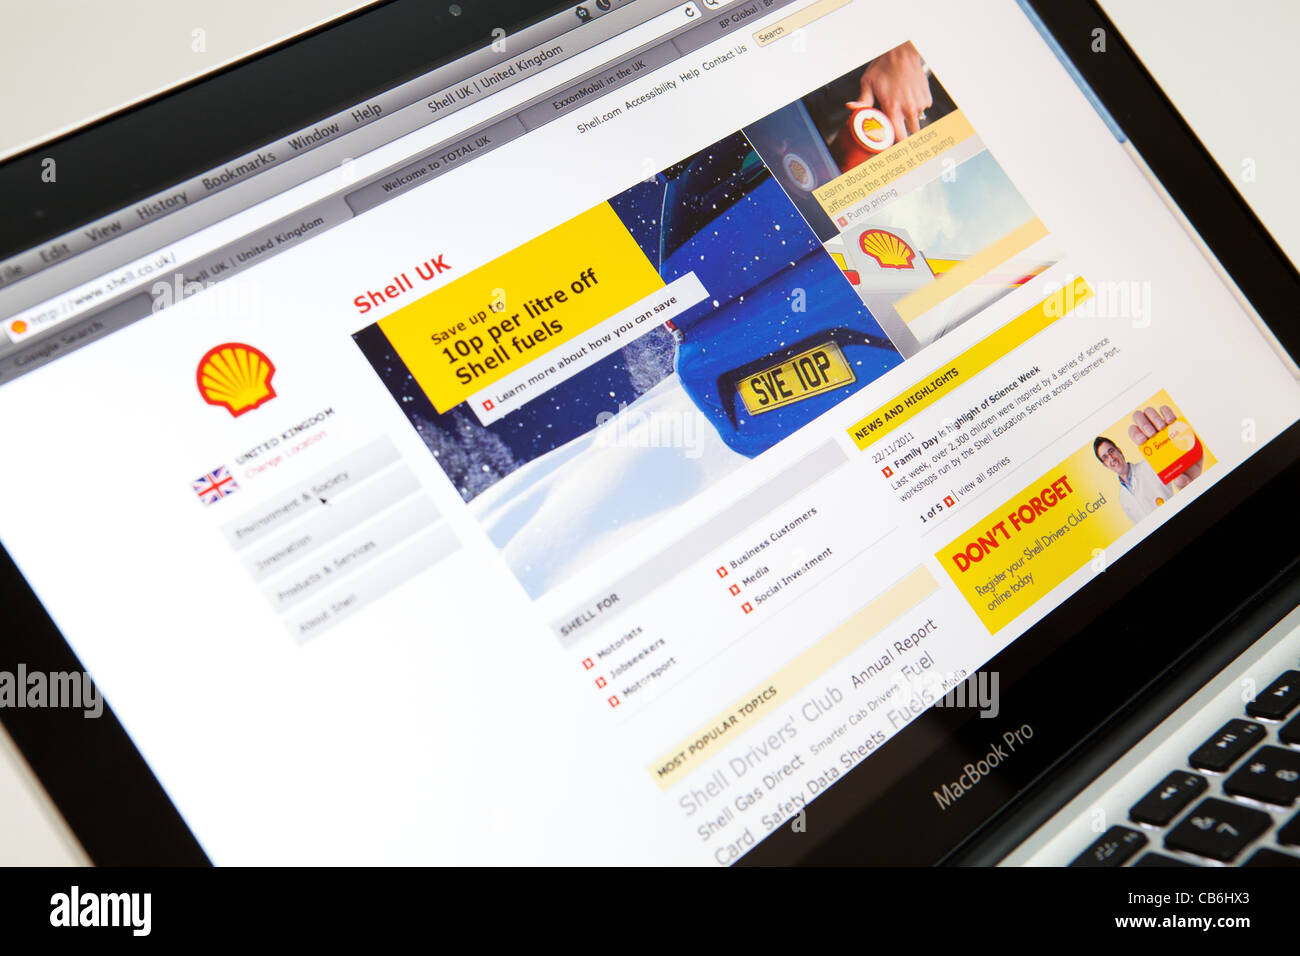 SHELL UK Fuel Website Screen shot of web page - Stock Image